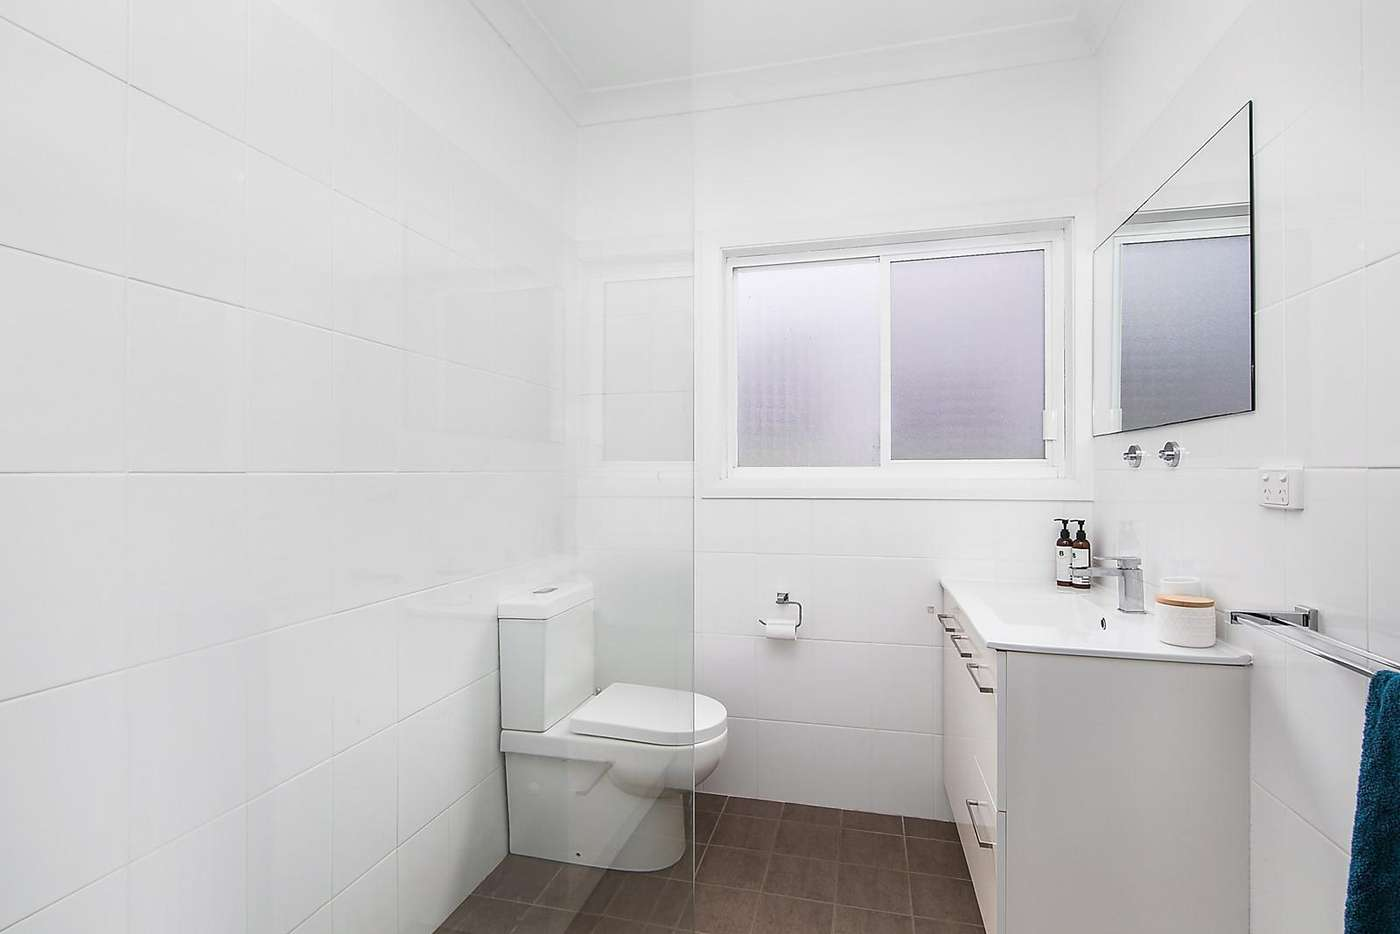 Sixth view of Homely house listing, 124 Bridges Road, New Lambton NSW 2305